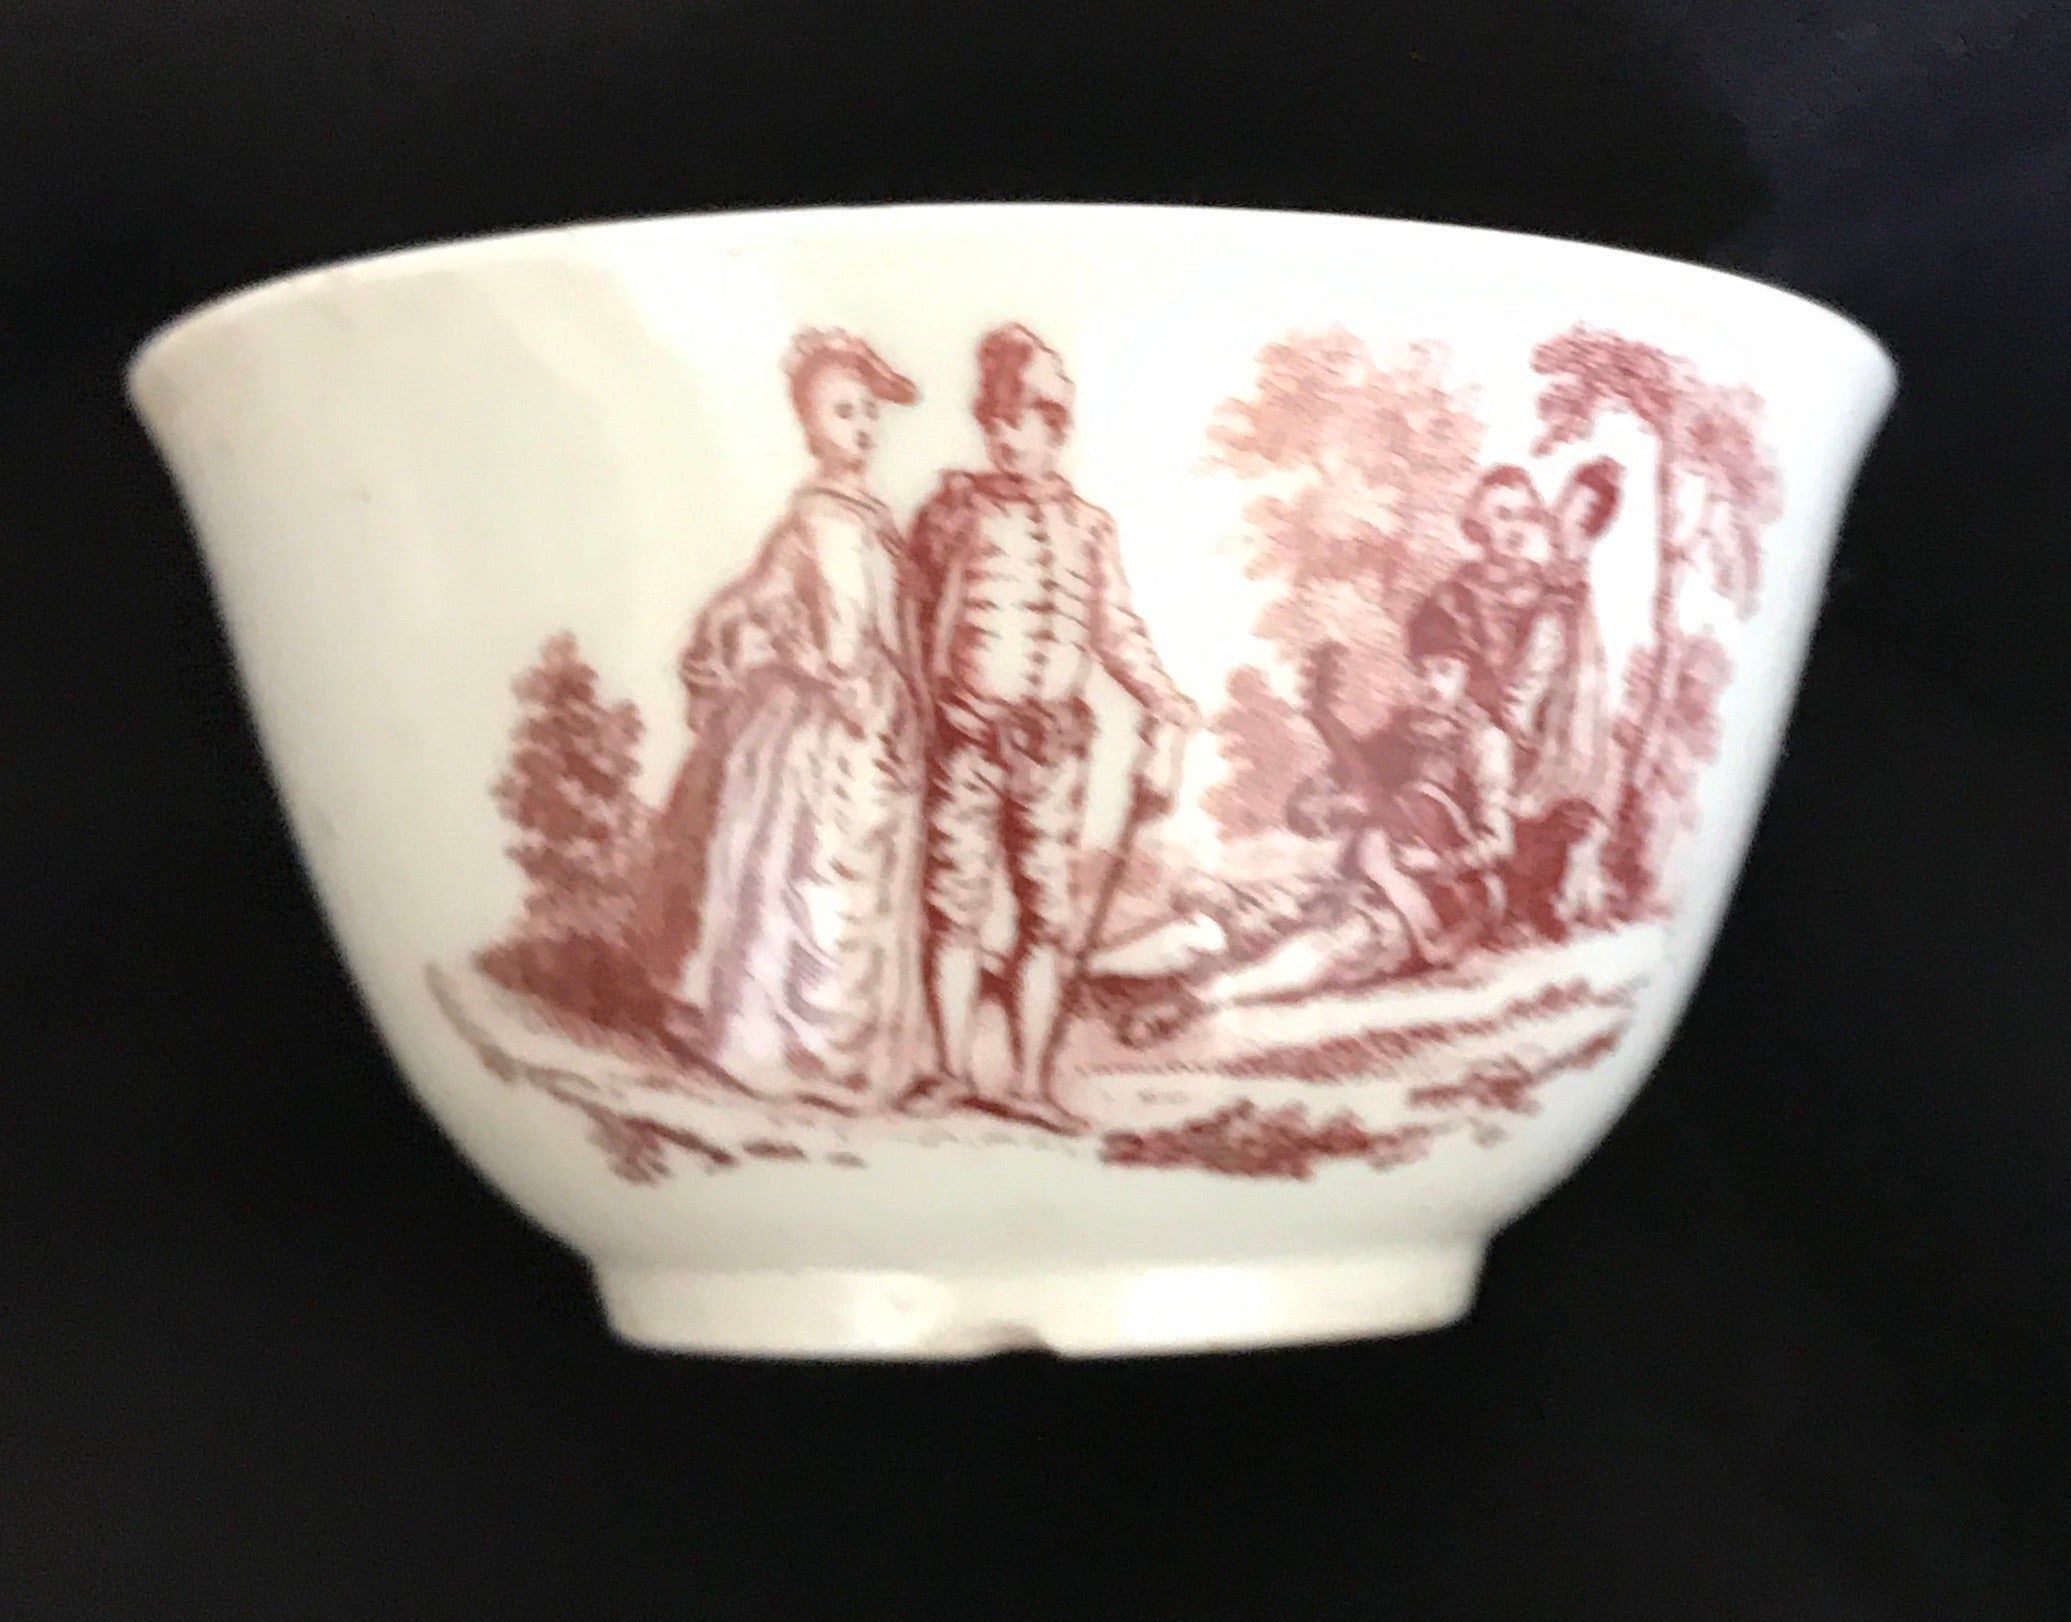 18th Century Worcester Porcelain Teabowl Transfer-Printed in Red.